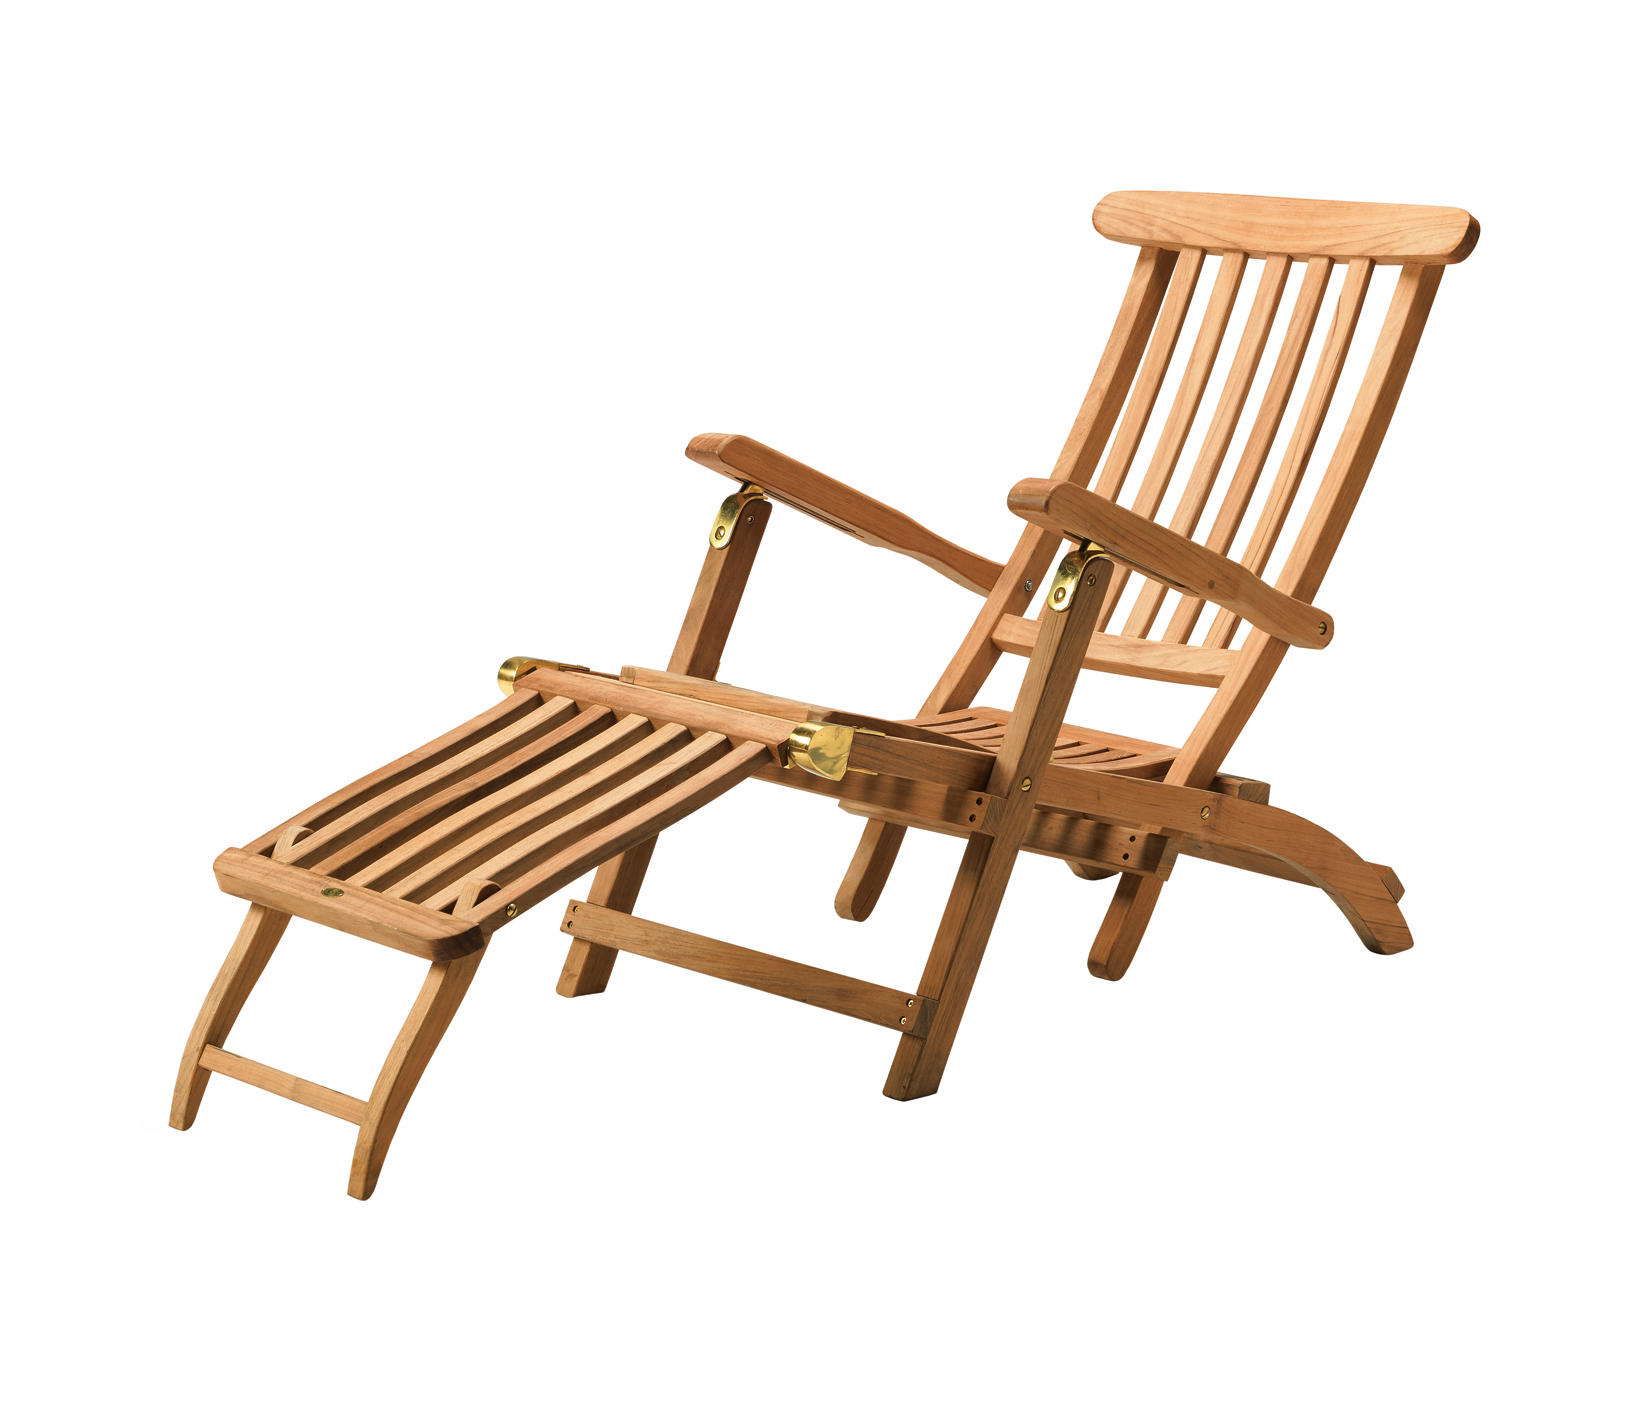 TITANIC SUN LOUNGER Sun loungers from Unopi¹